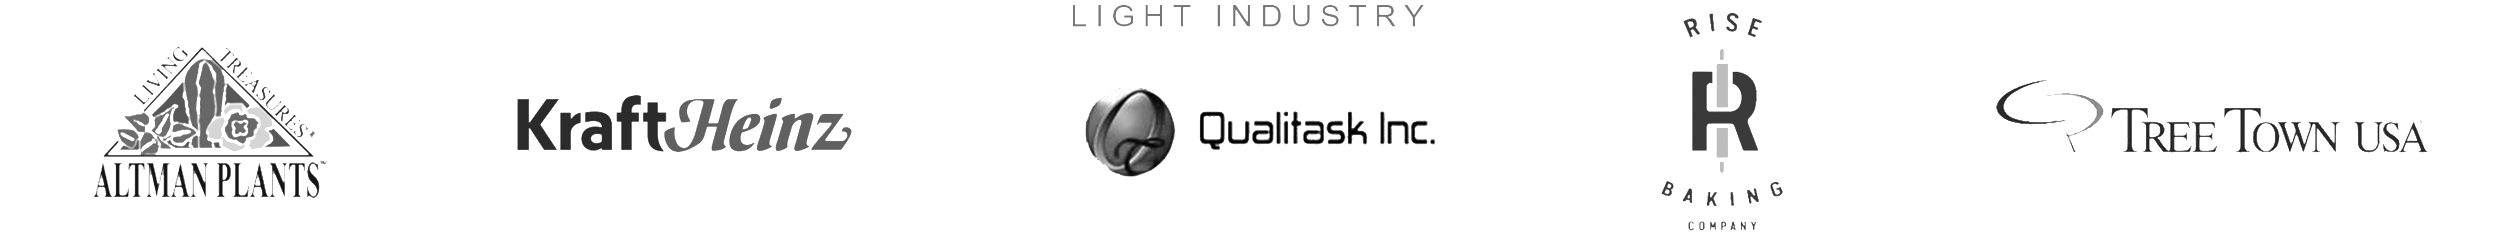 Light Industry: Altman Plants, KraftHeinz, Qualitask Inc., Rise Baking Company, and Tree Town USA Logos